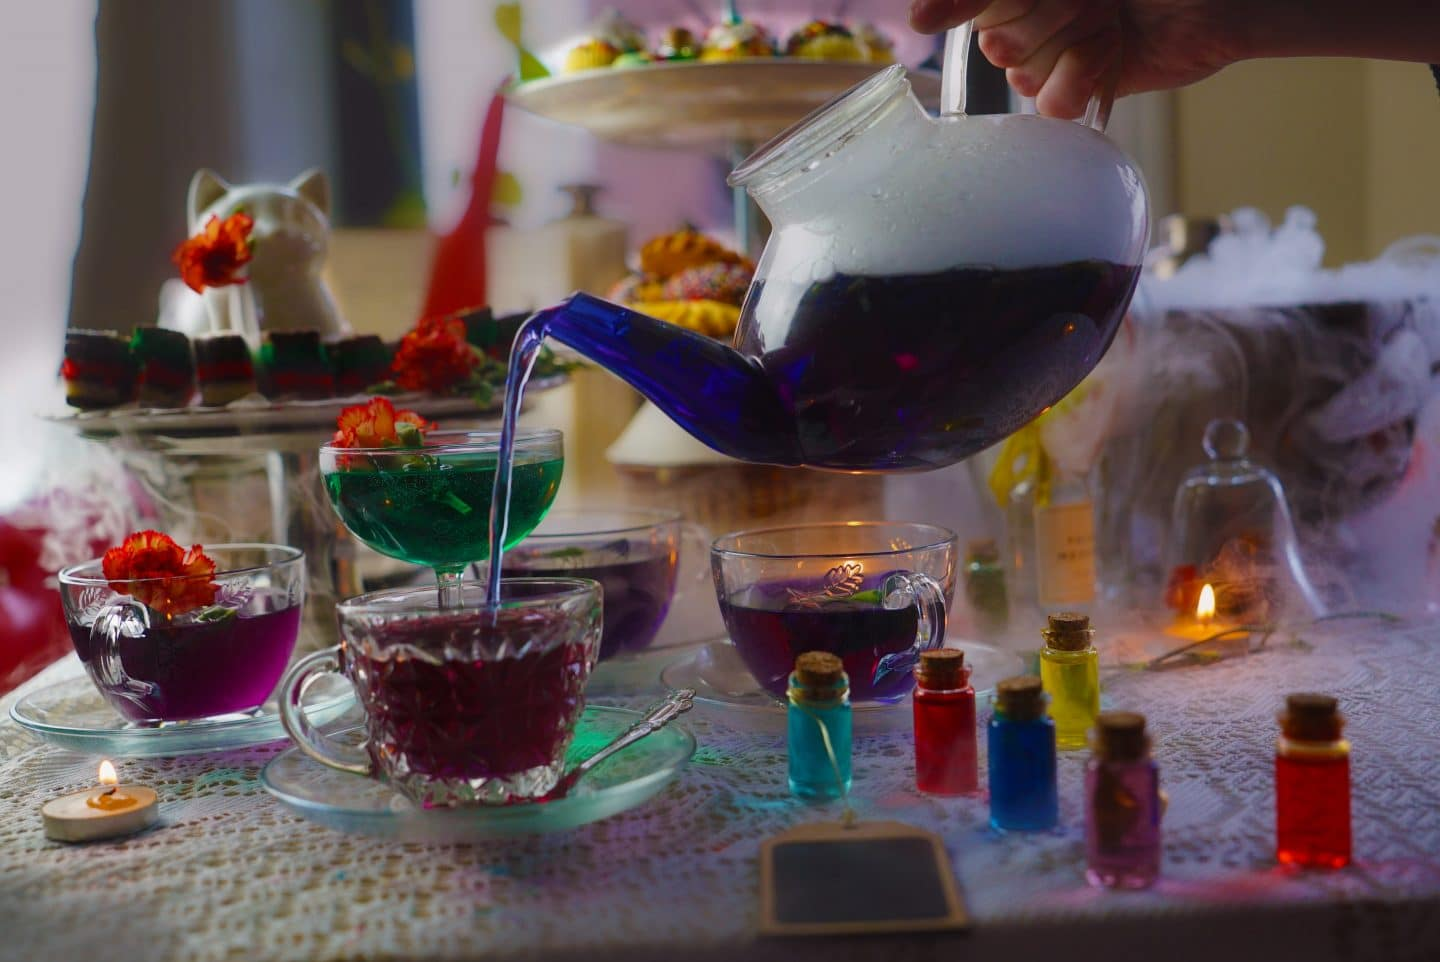 LA's Alice In Wonderland-Themed Tea Party is Summer's Maddest Pop-Up